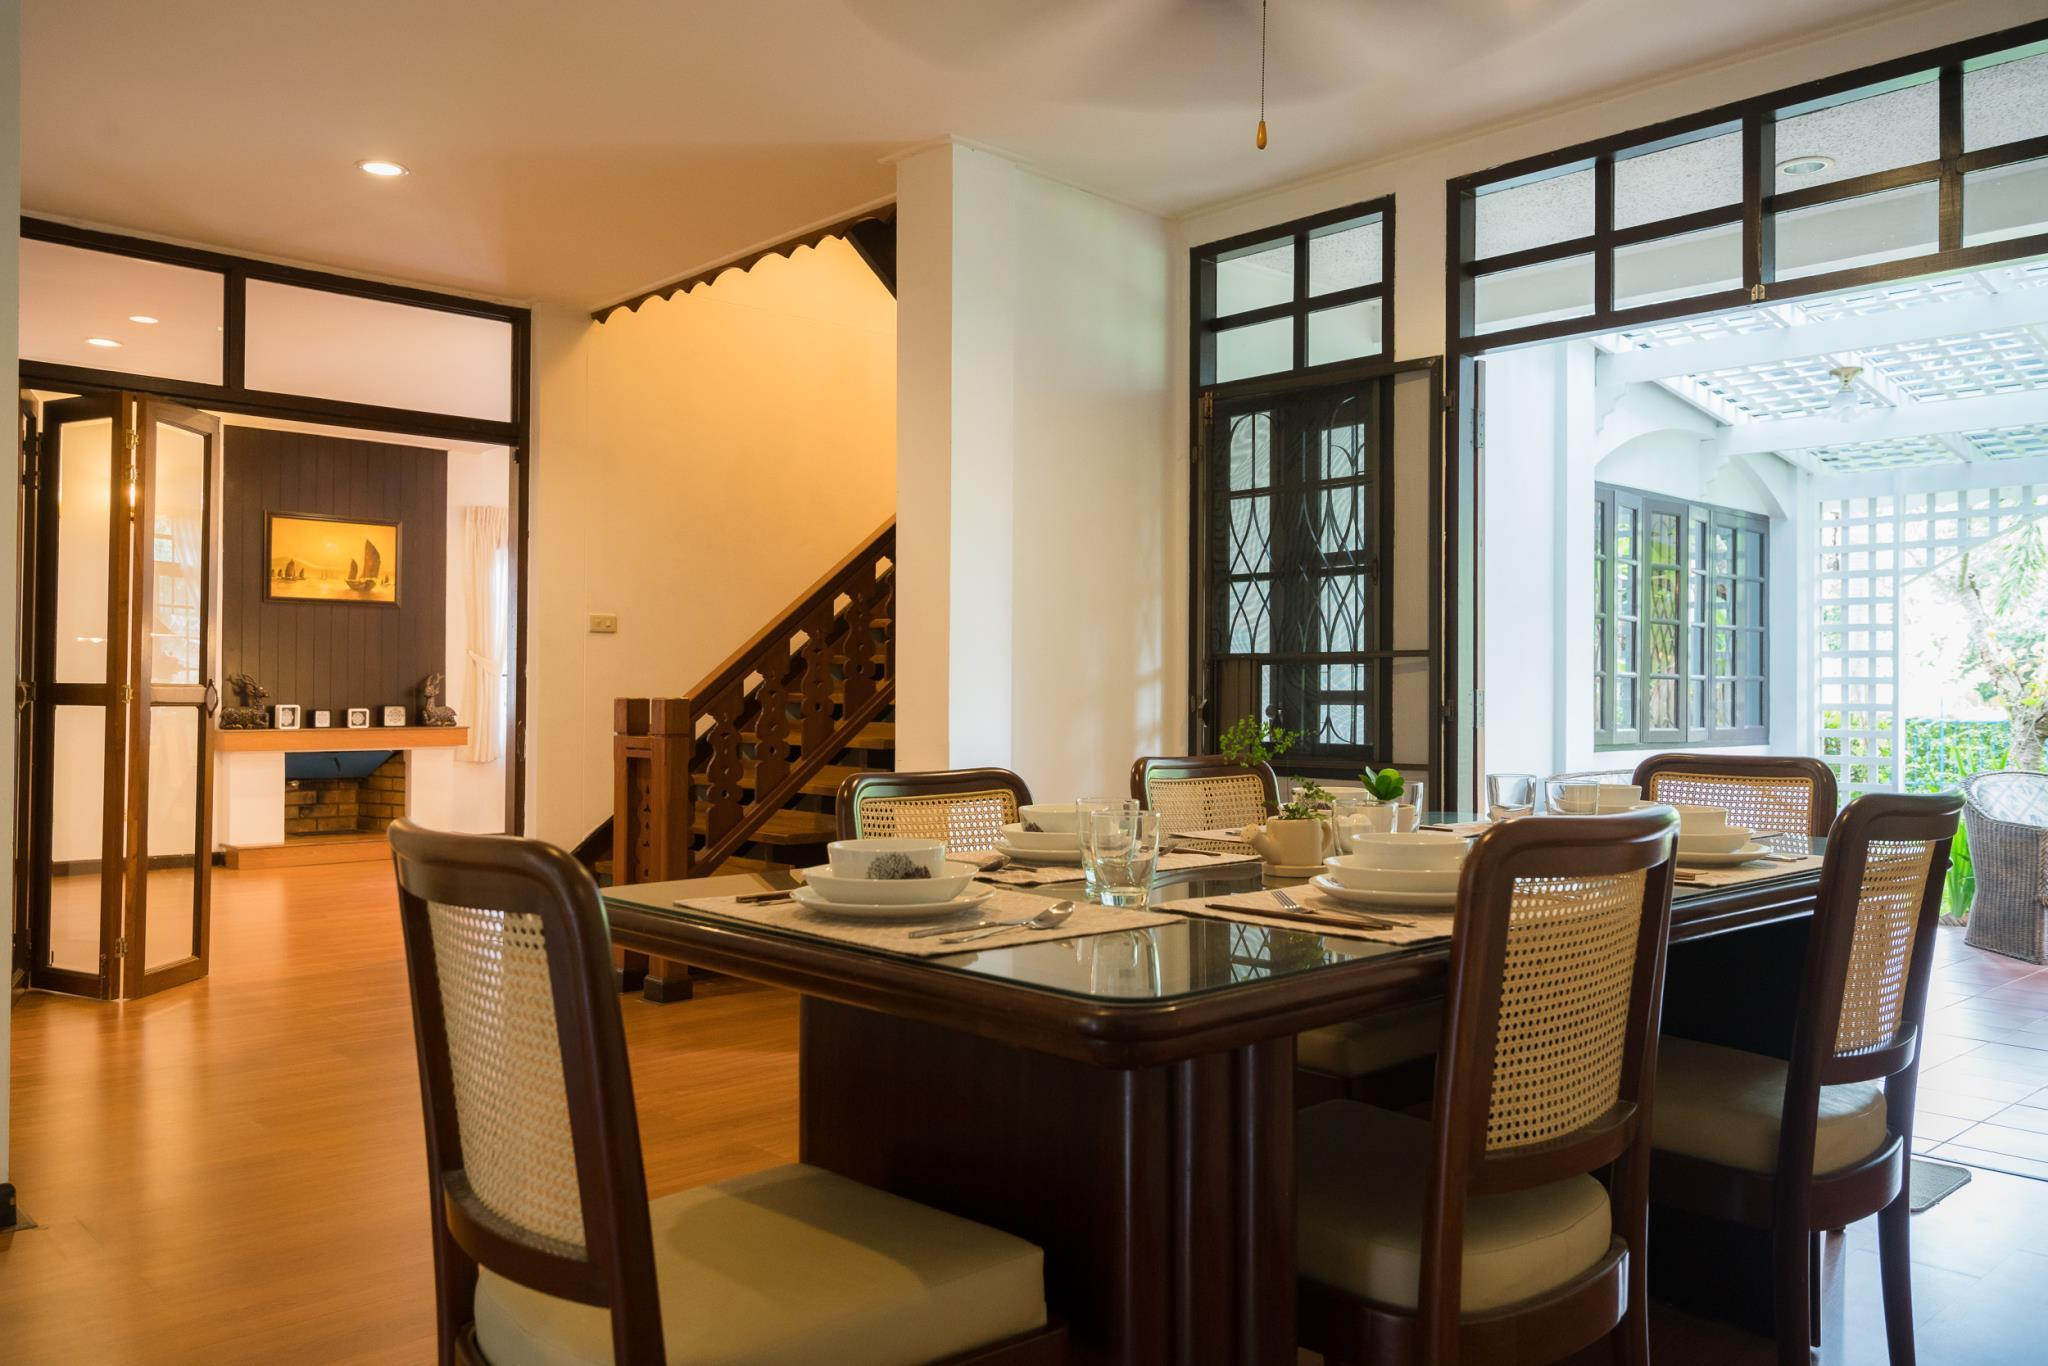 A taste of Europe in Chiang Mai with Private pool,A taste of Europe in Chiang Mai with Private pool